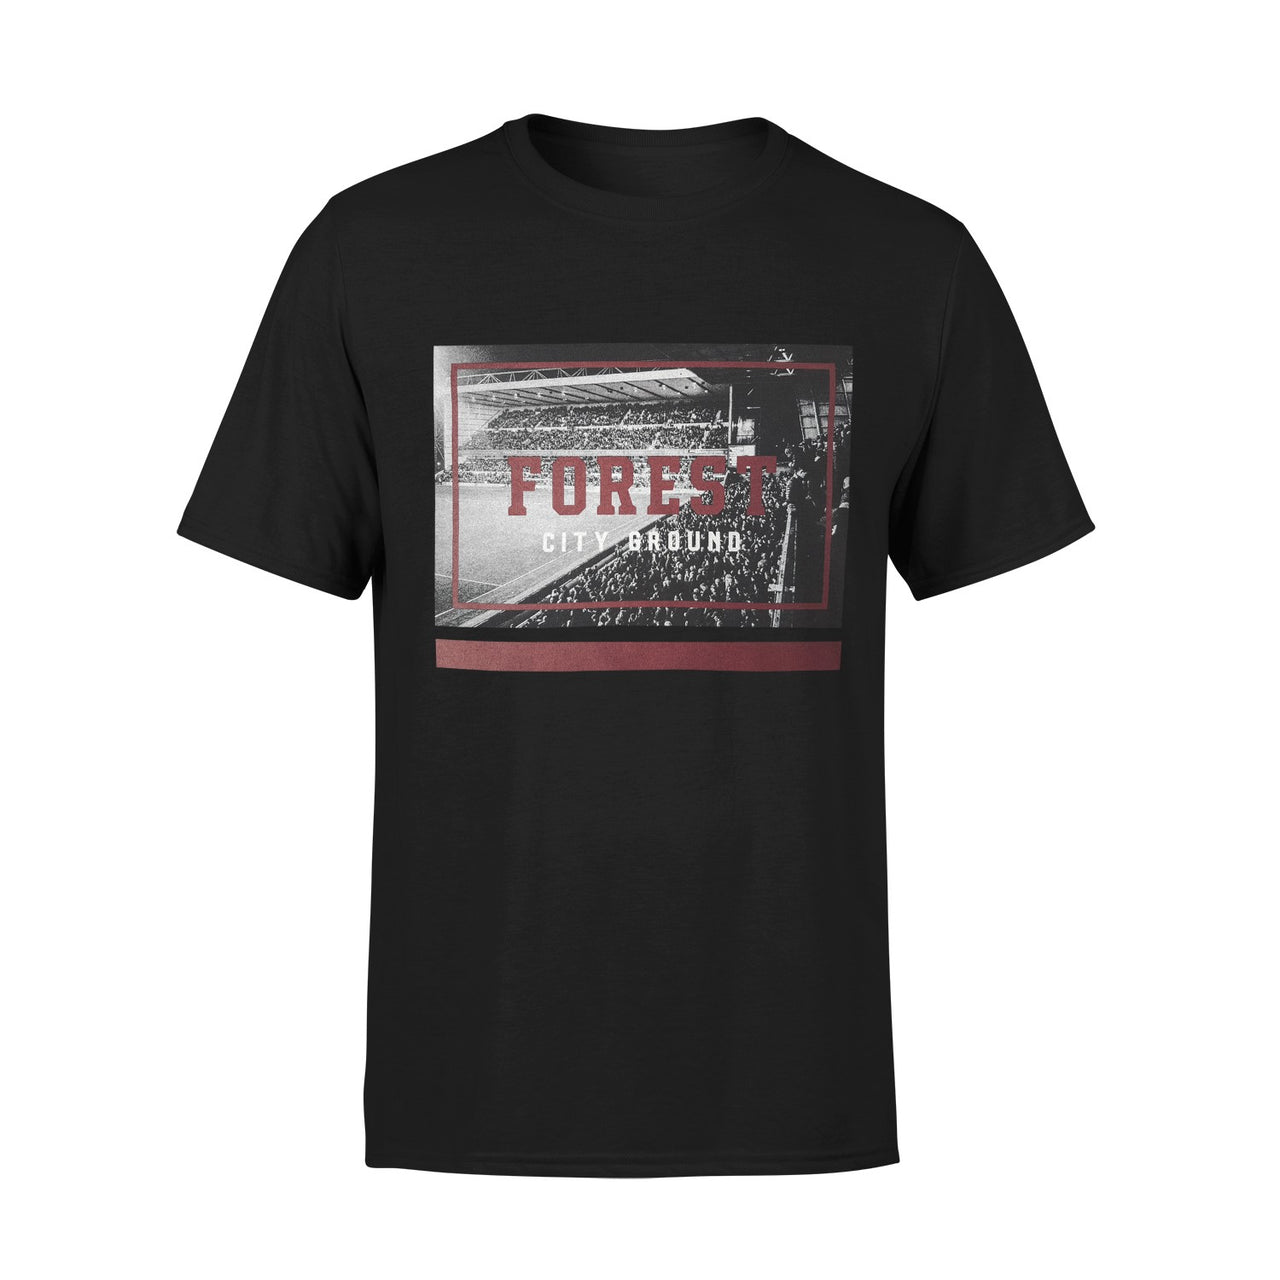 NFFC Junior Black City Ground T-Shirt